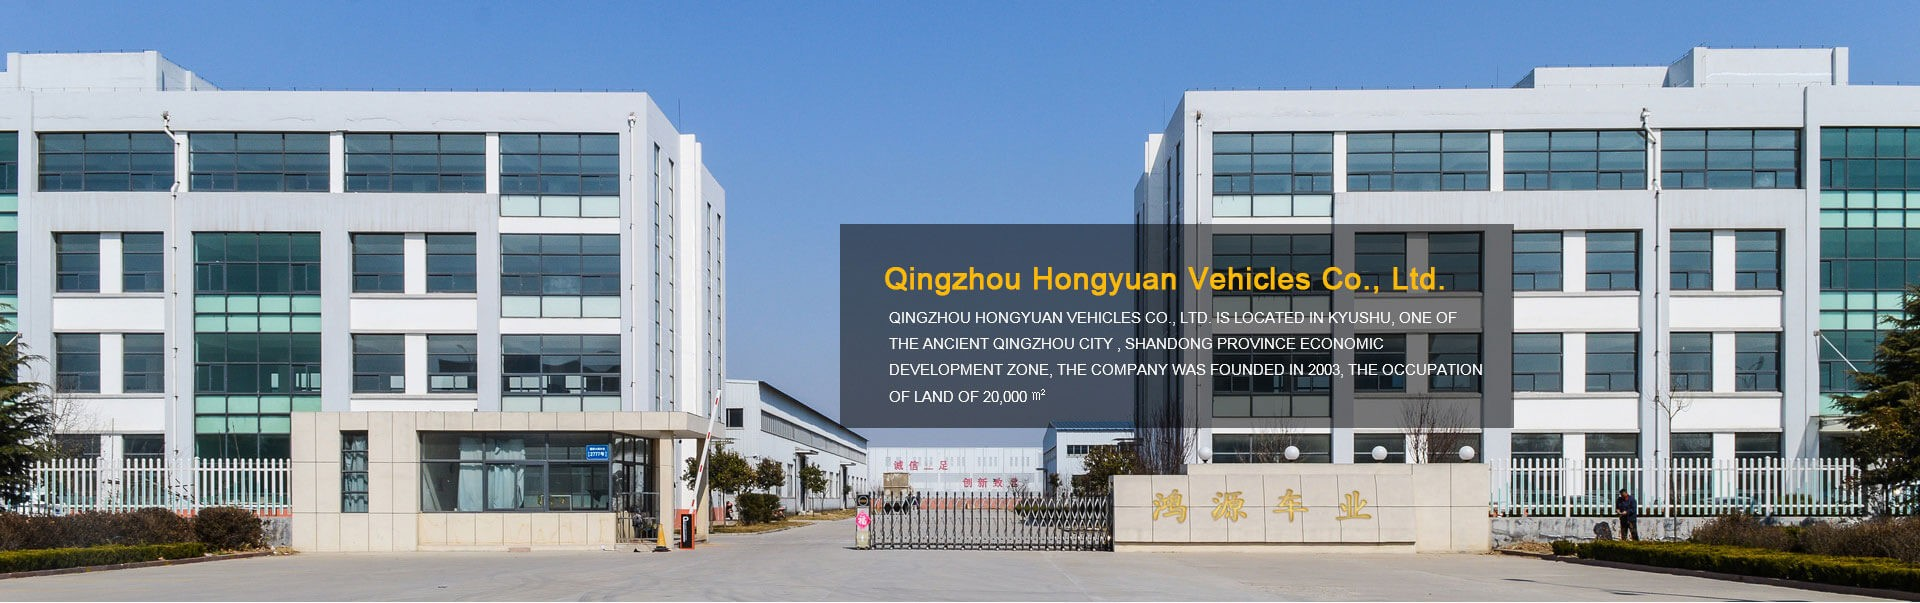 Qingzhou Hongyuan Vehicles Co.، Ltd